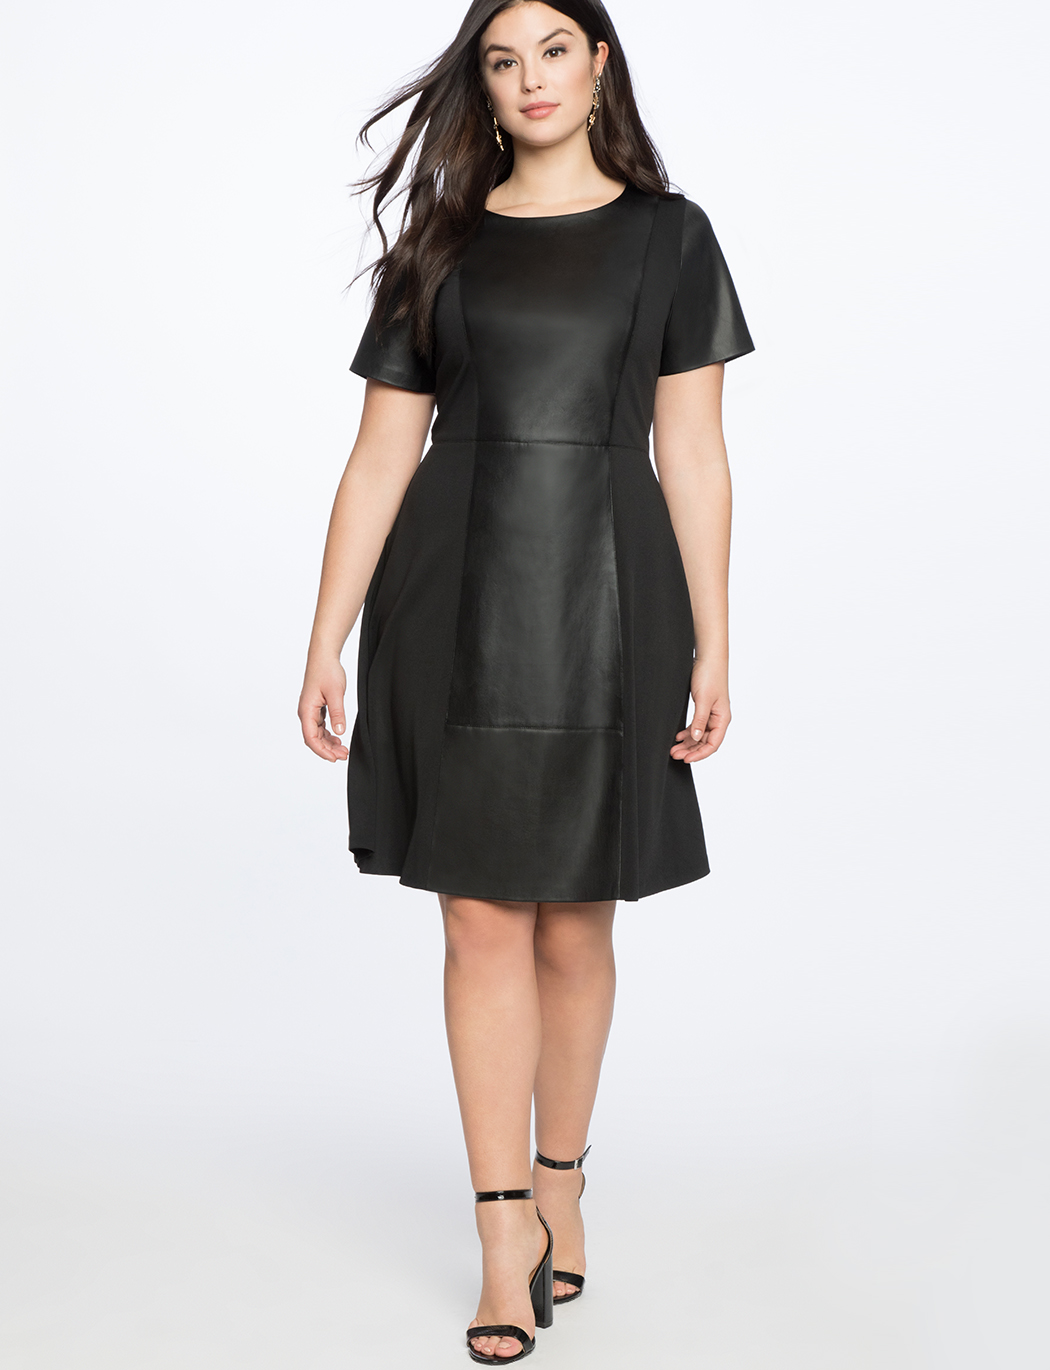 Faux Leather and Ponte Mix Dress | Women\'s Plus Size Dresses ...